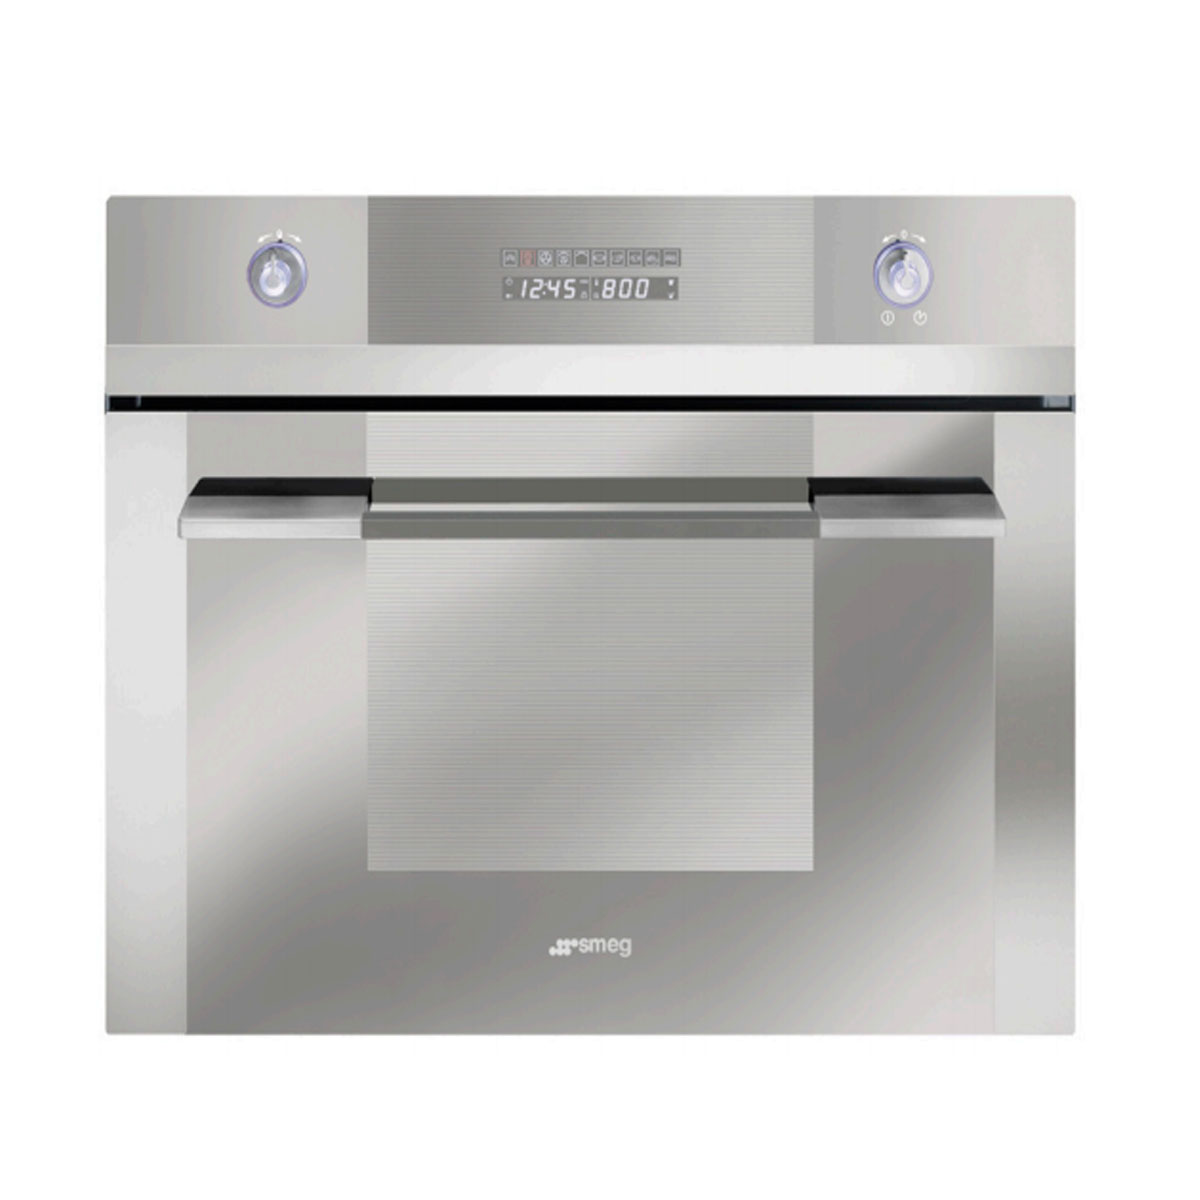 Smeg SCA45VCB2 60cm Combi Steam Wall Oven